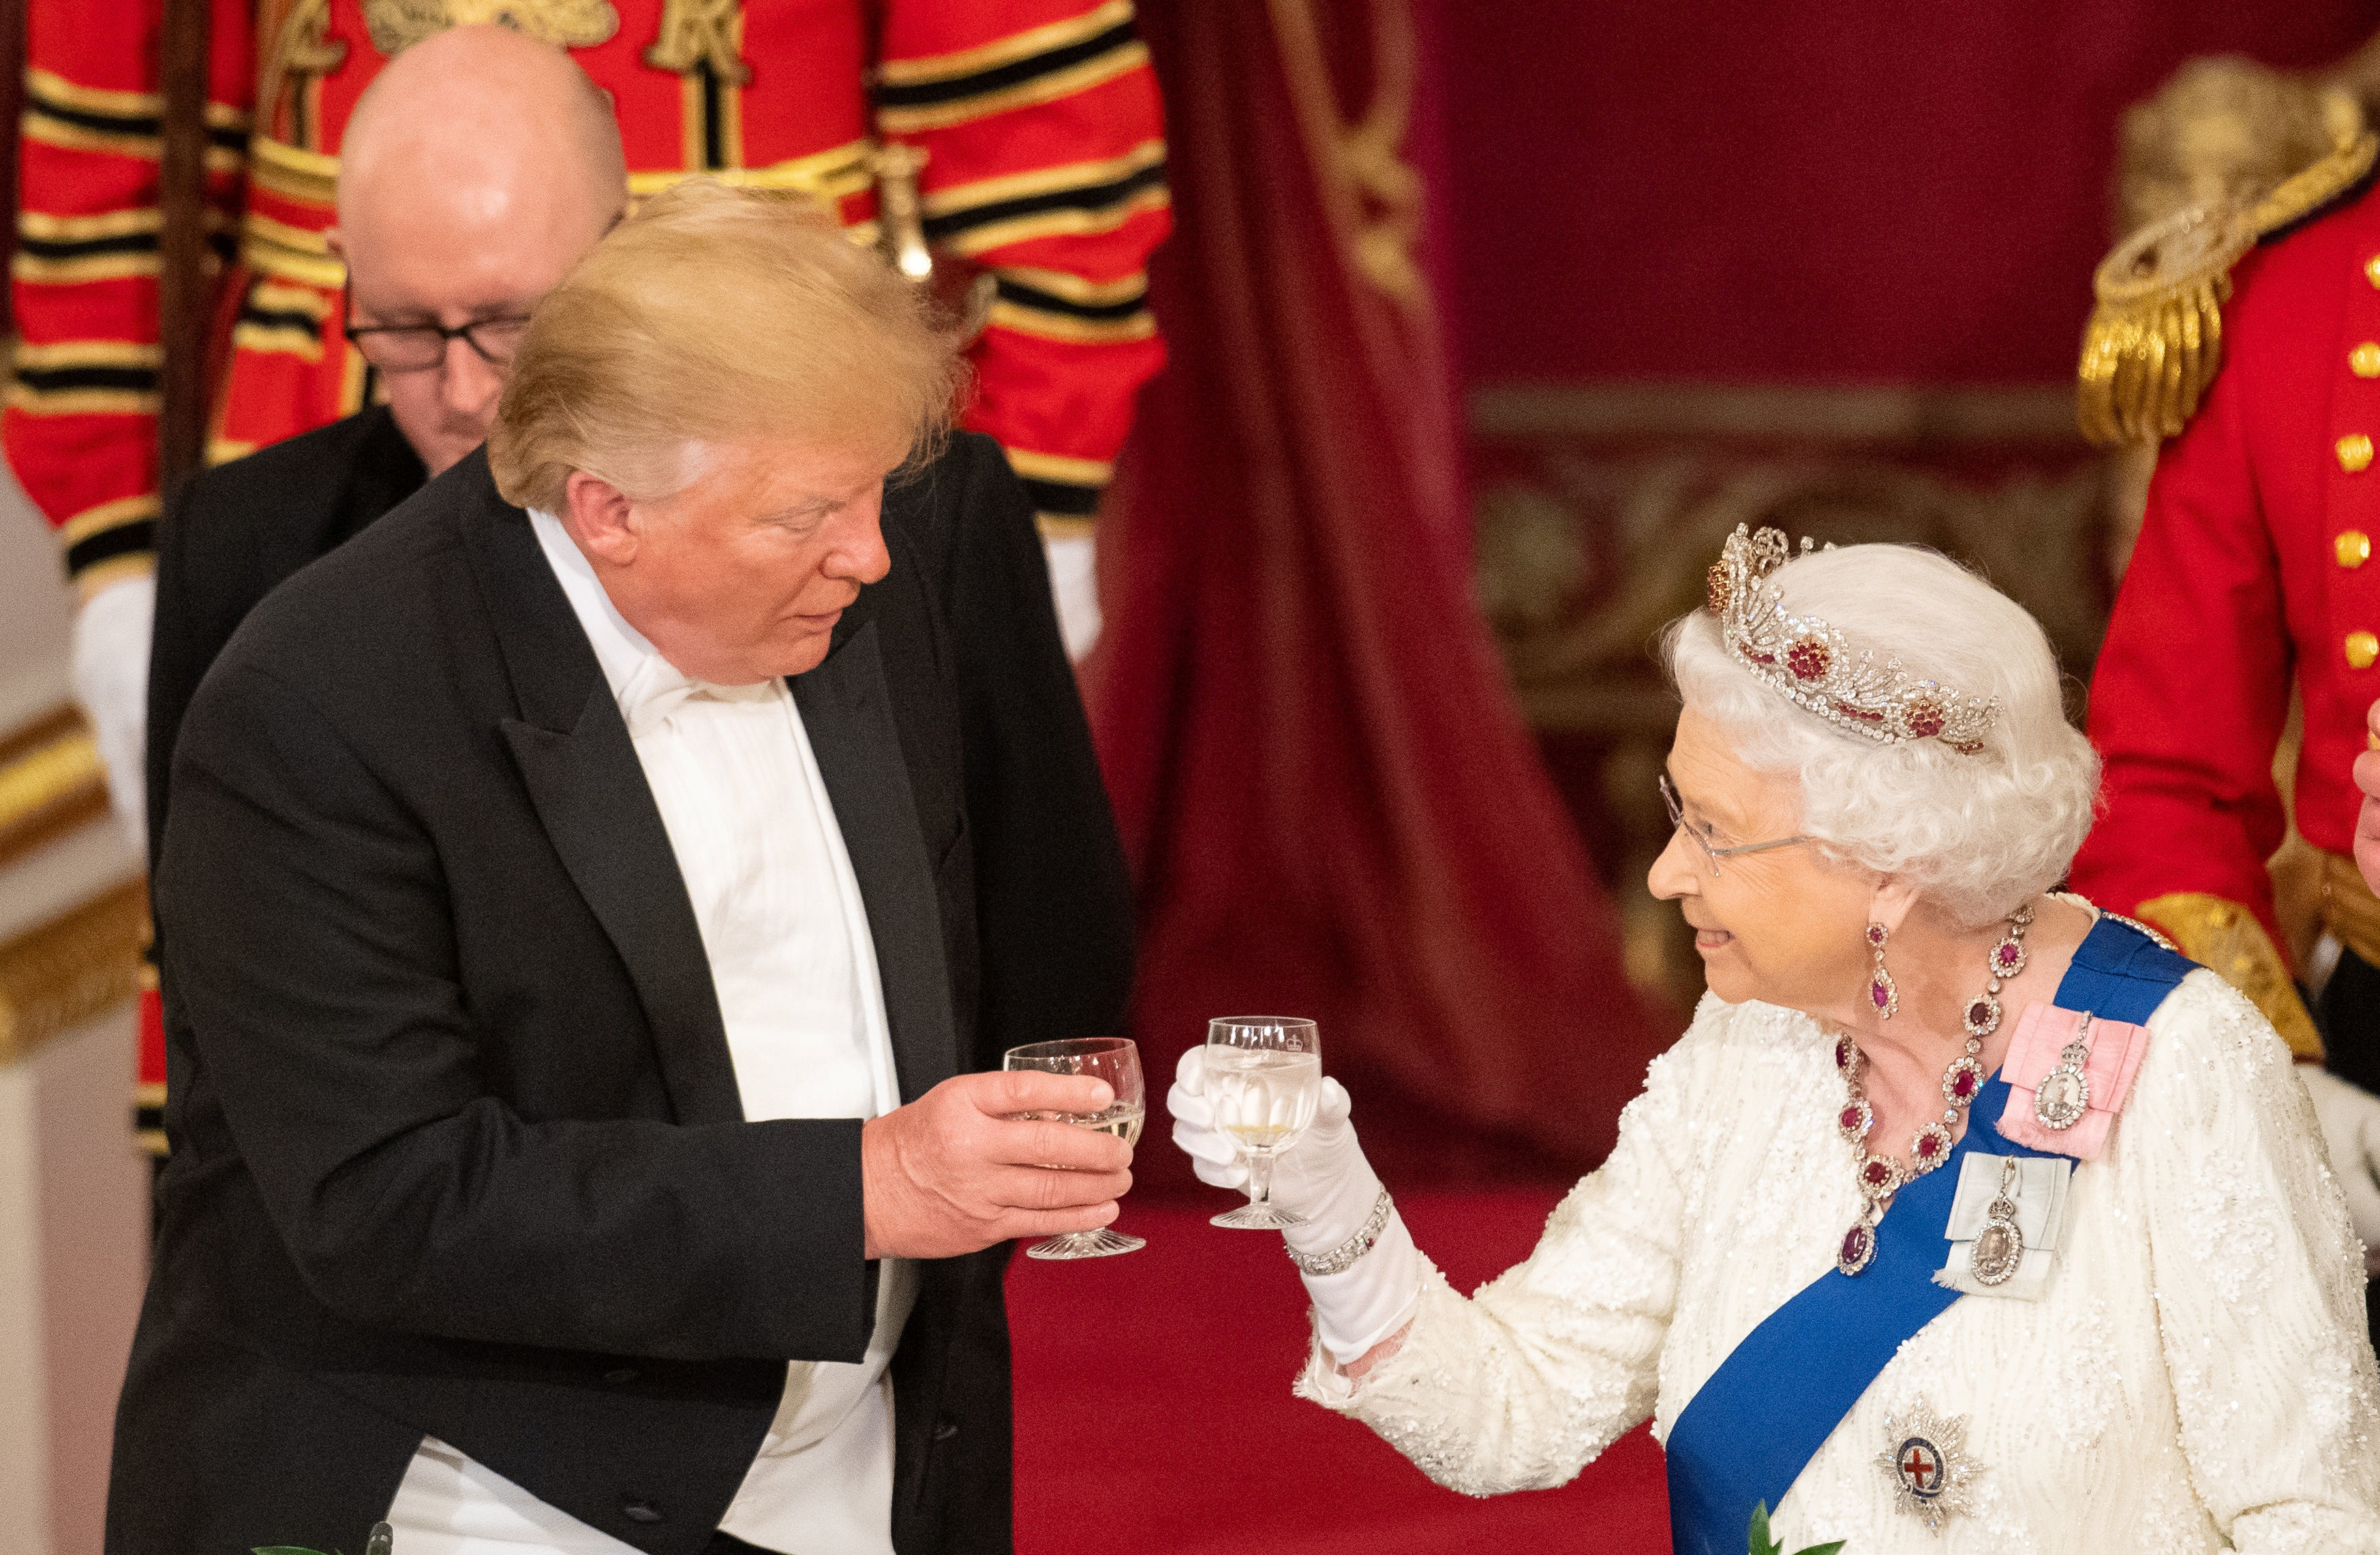 Donald Trump and the Queen raise their glasses to make a toast at the State Banquet at Buckingham...